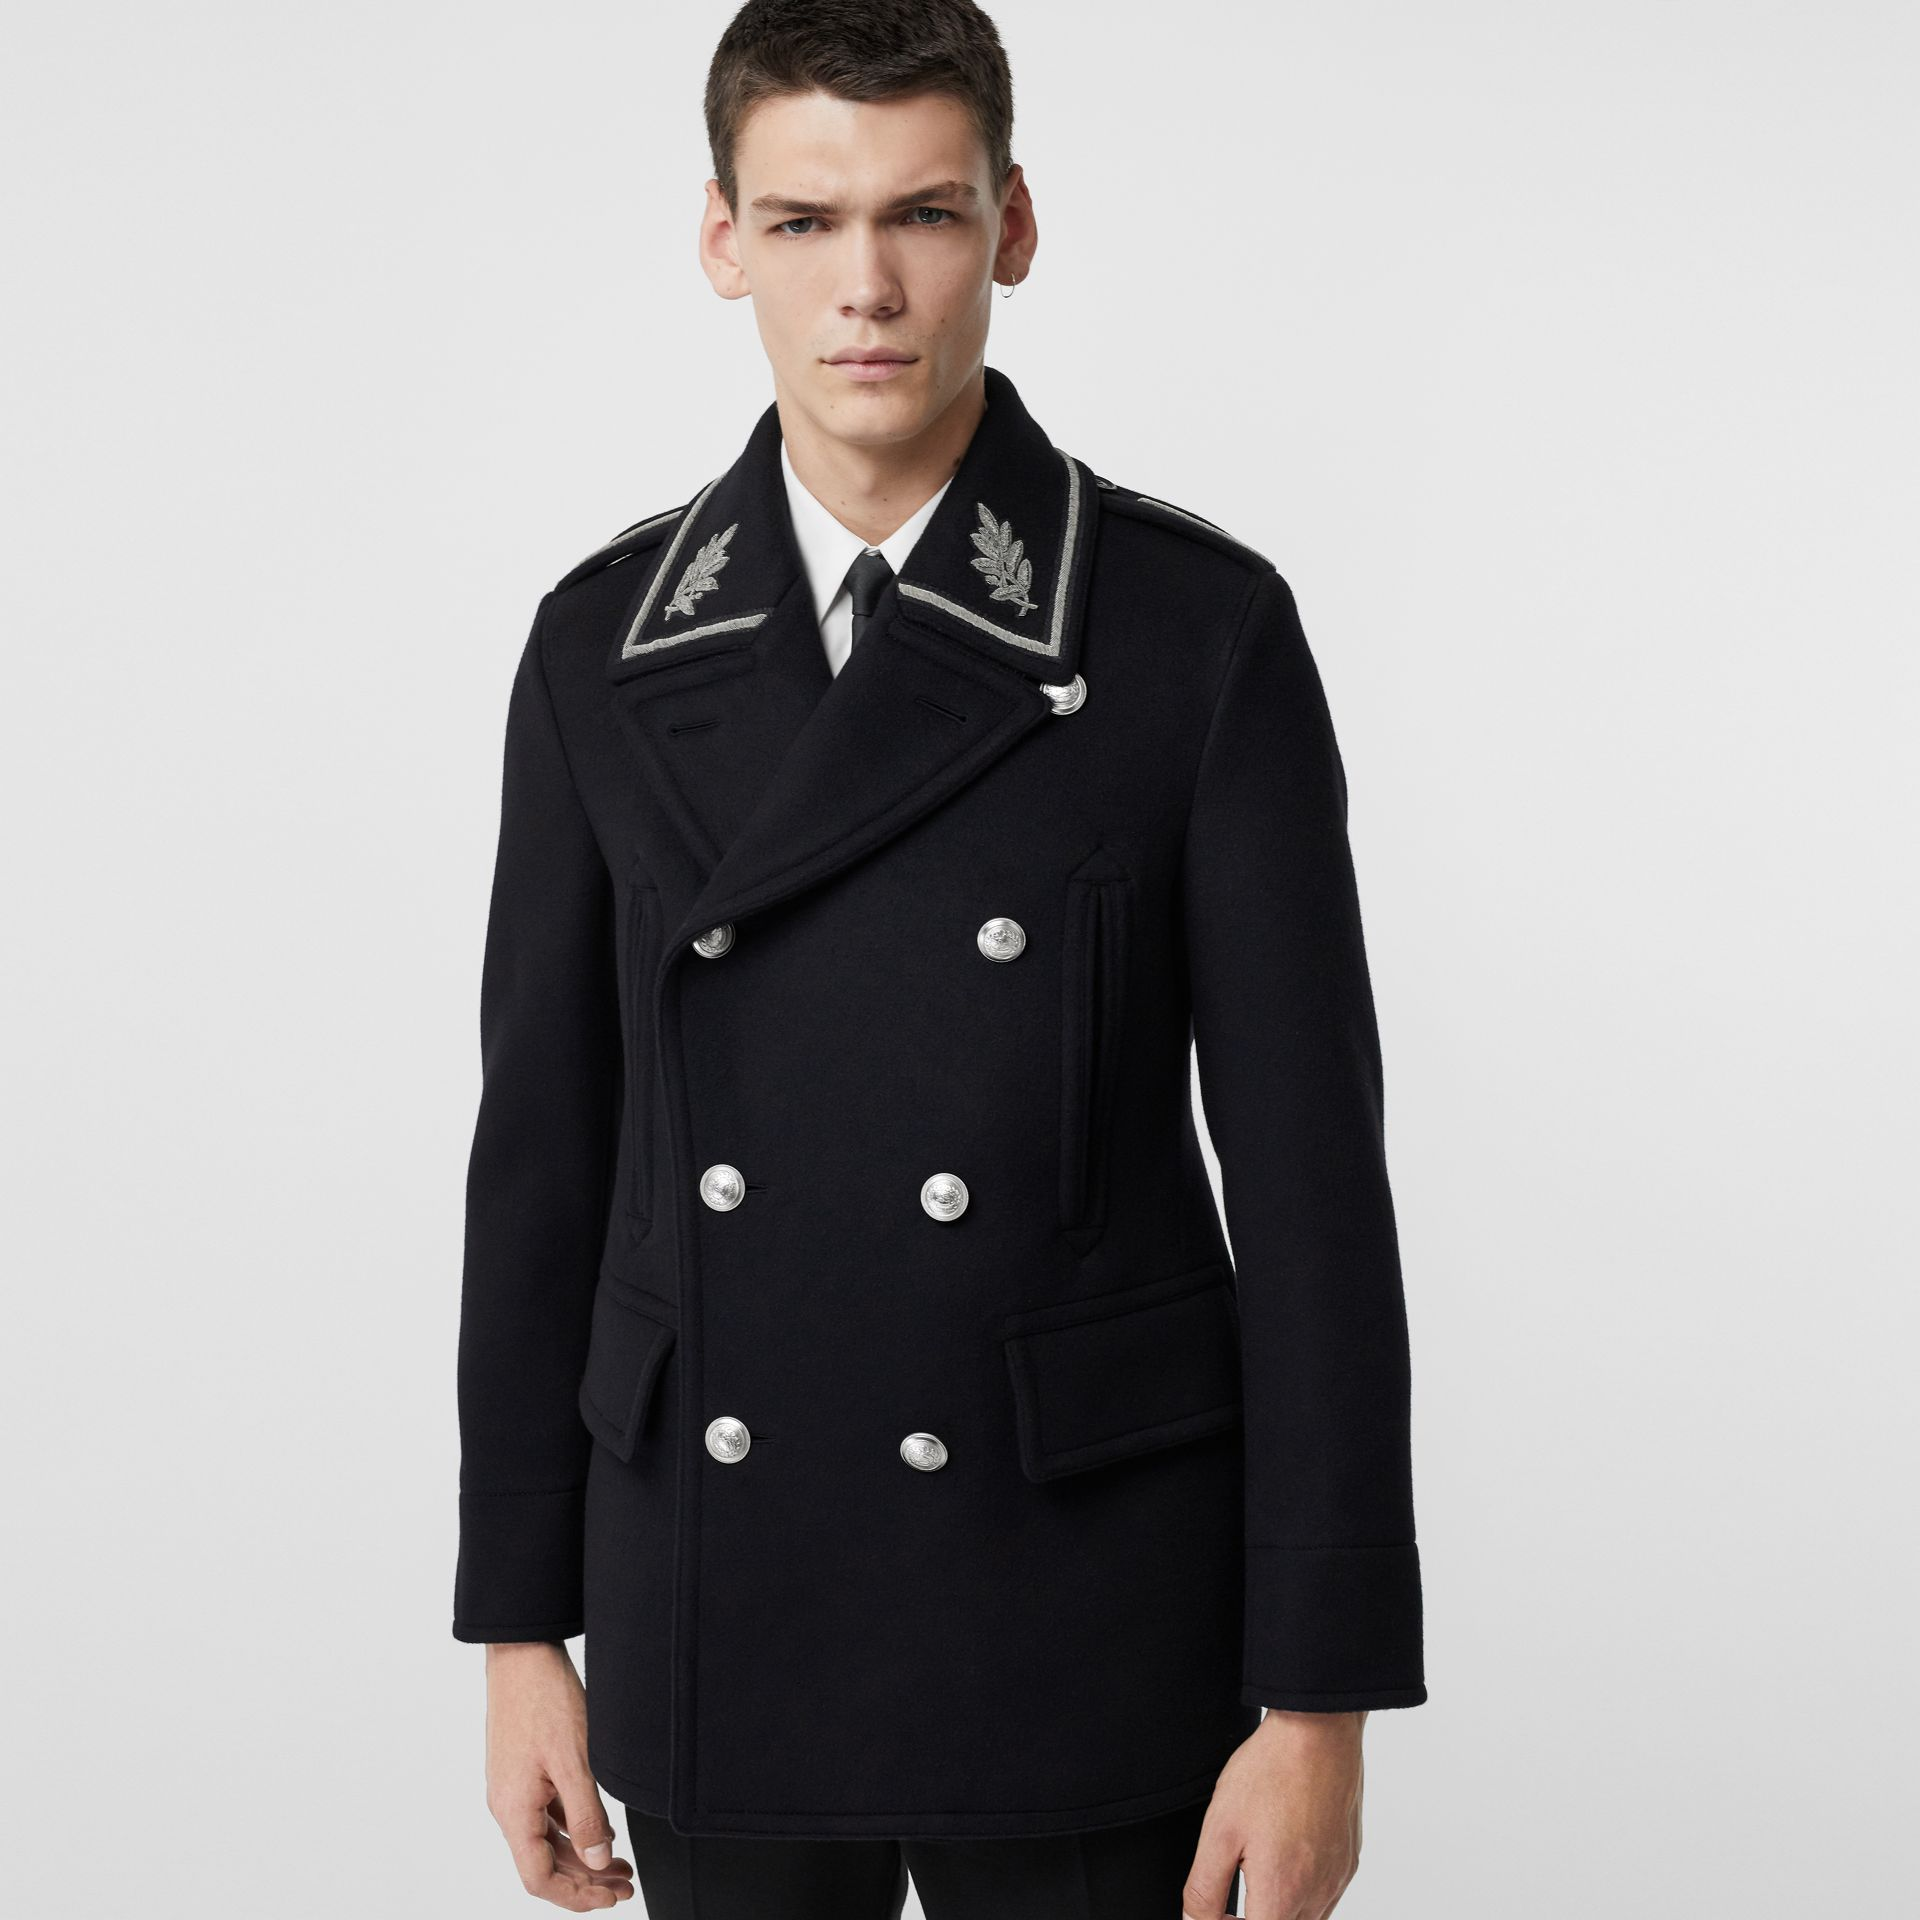 Bullion Wool Cashmere Pea Coat in Dark Navy - Men | Burberry Singapore - gallery image 5